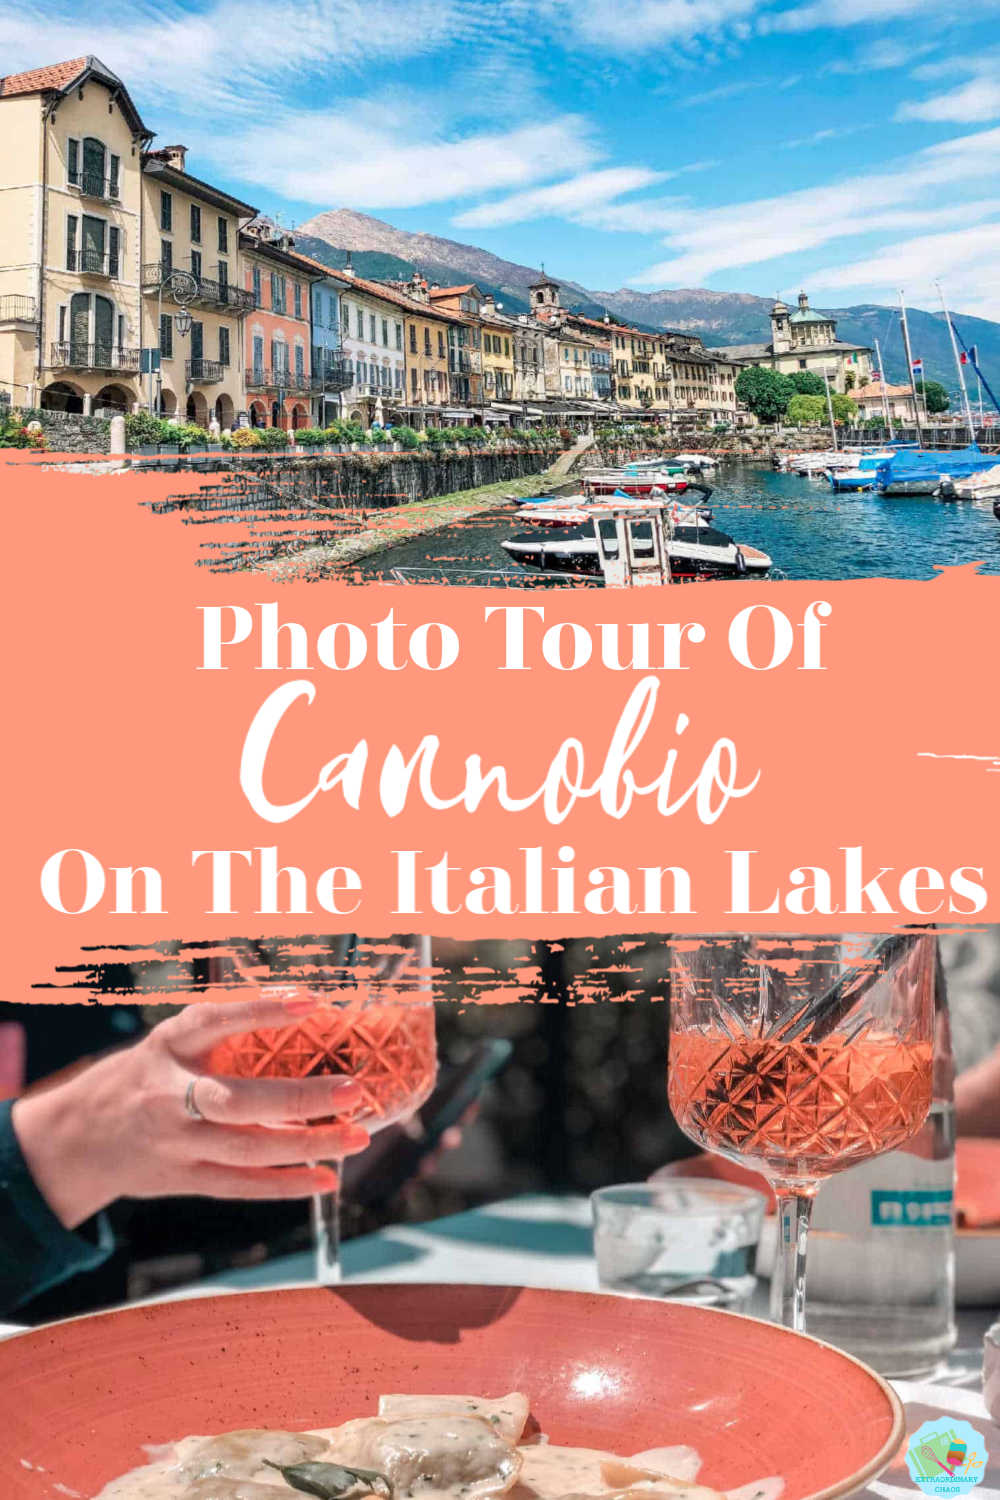 Cannobio is on Lake Maggiore in Italy a photo tour of the Island